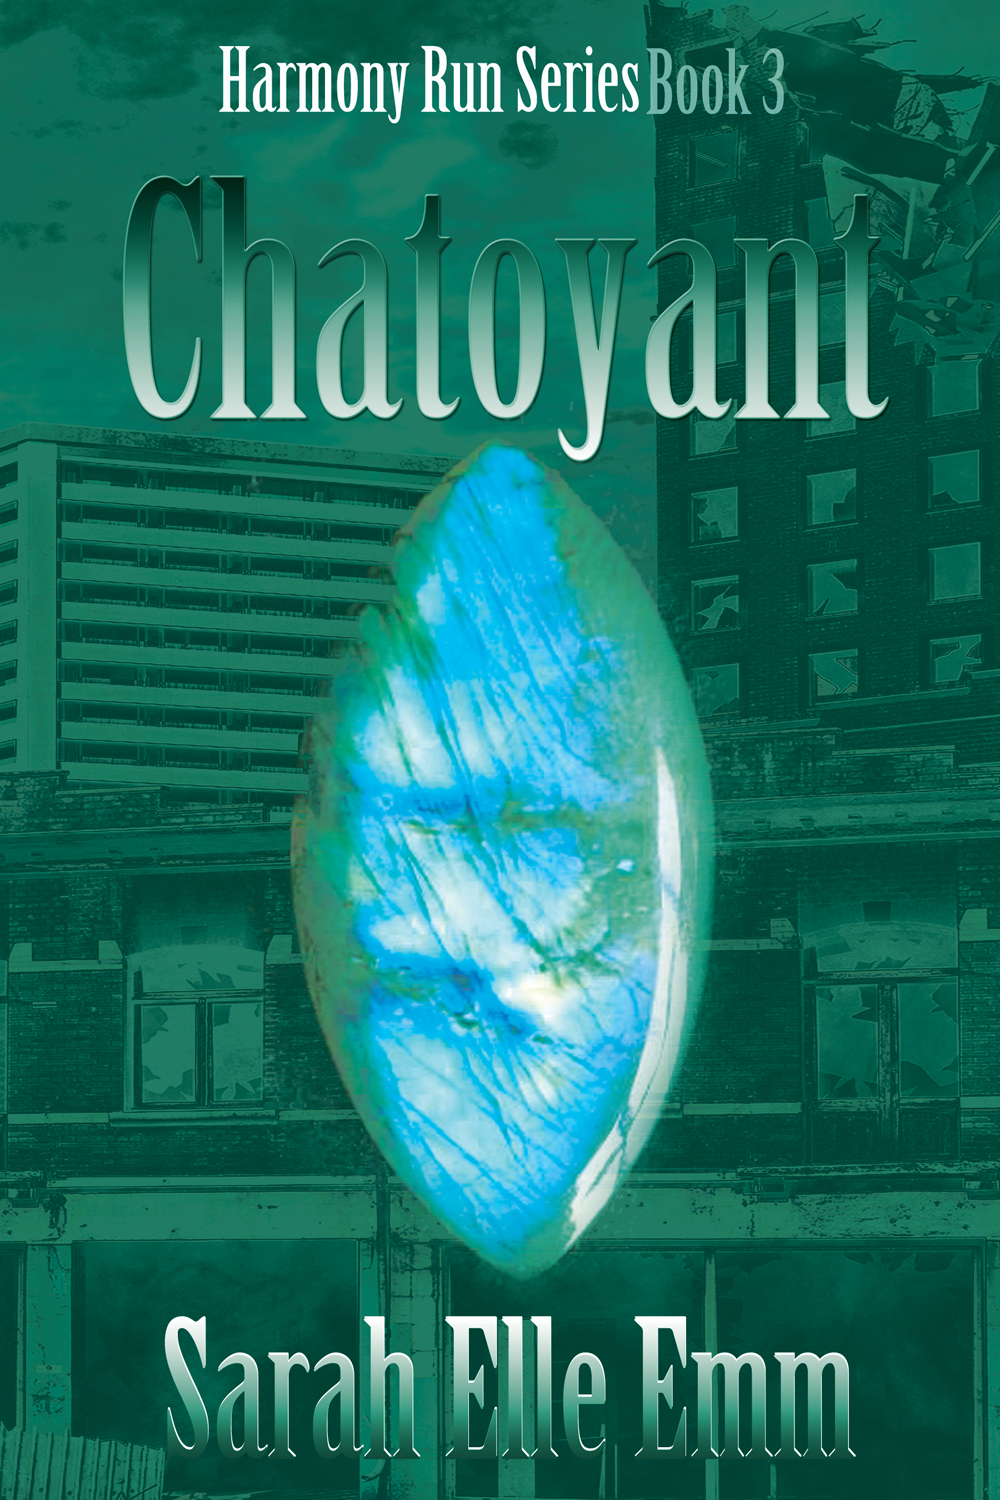 Now Available: Chatoyant